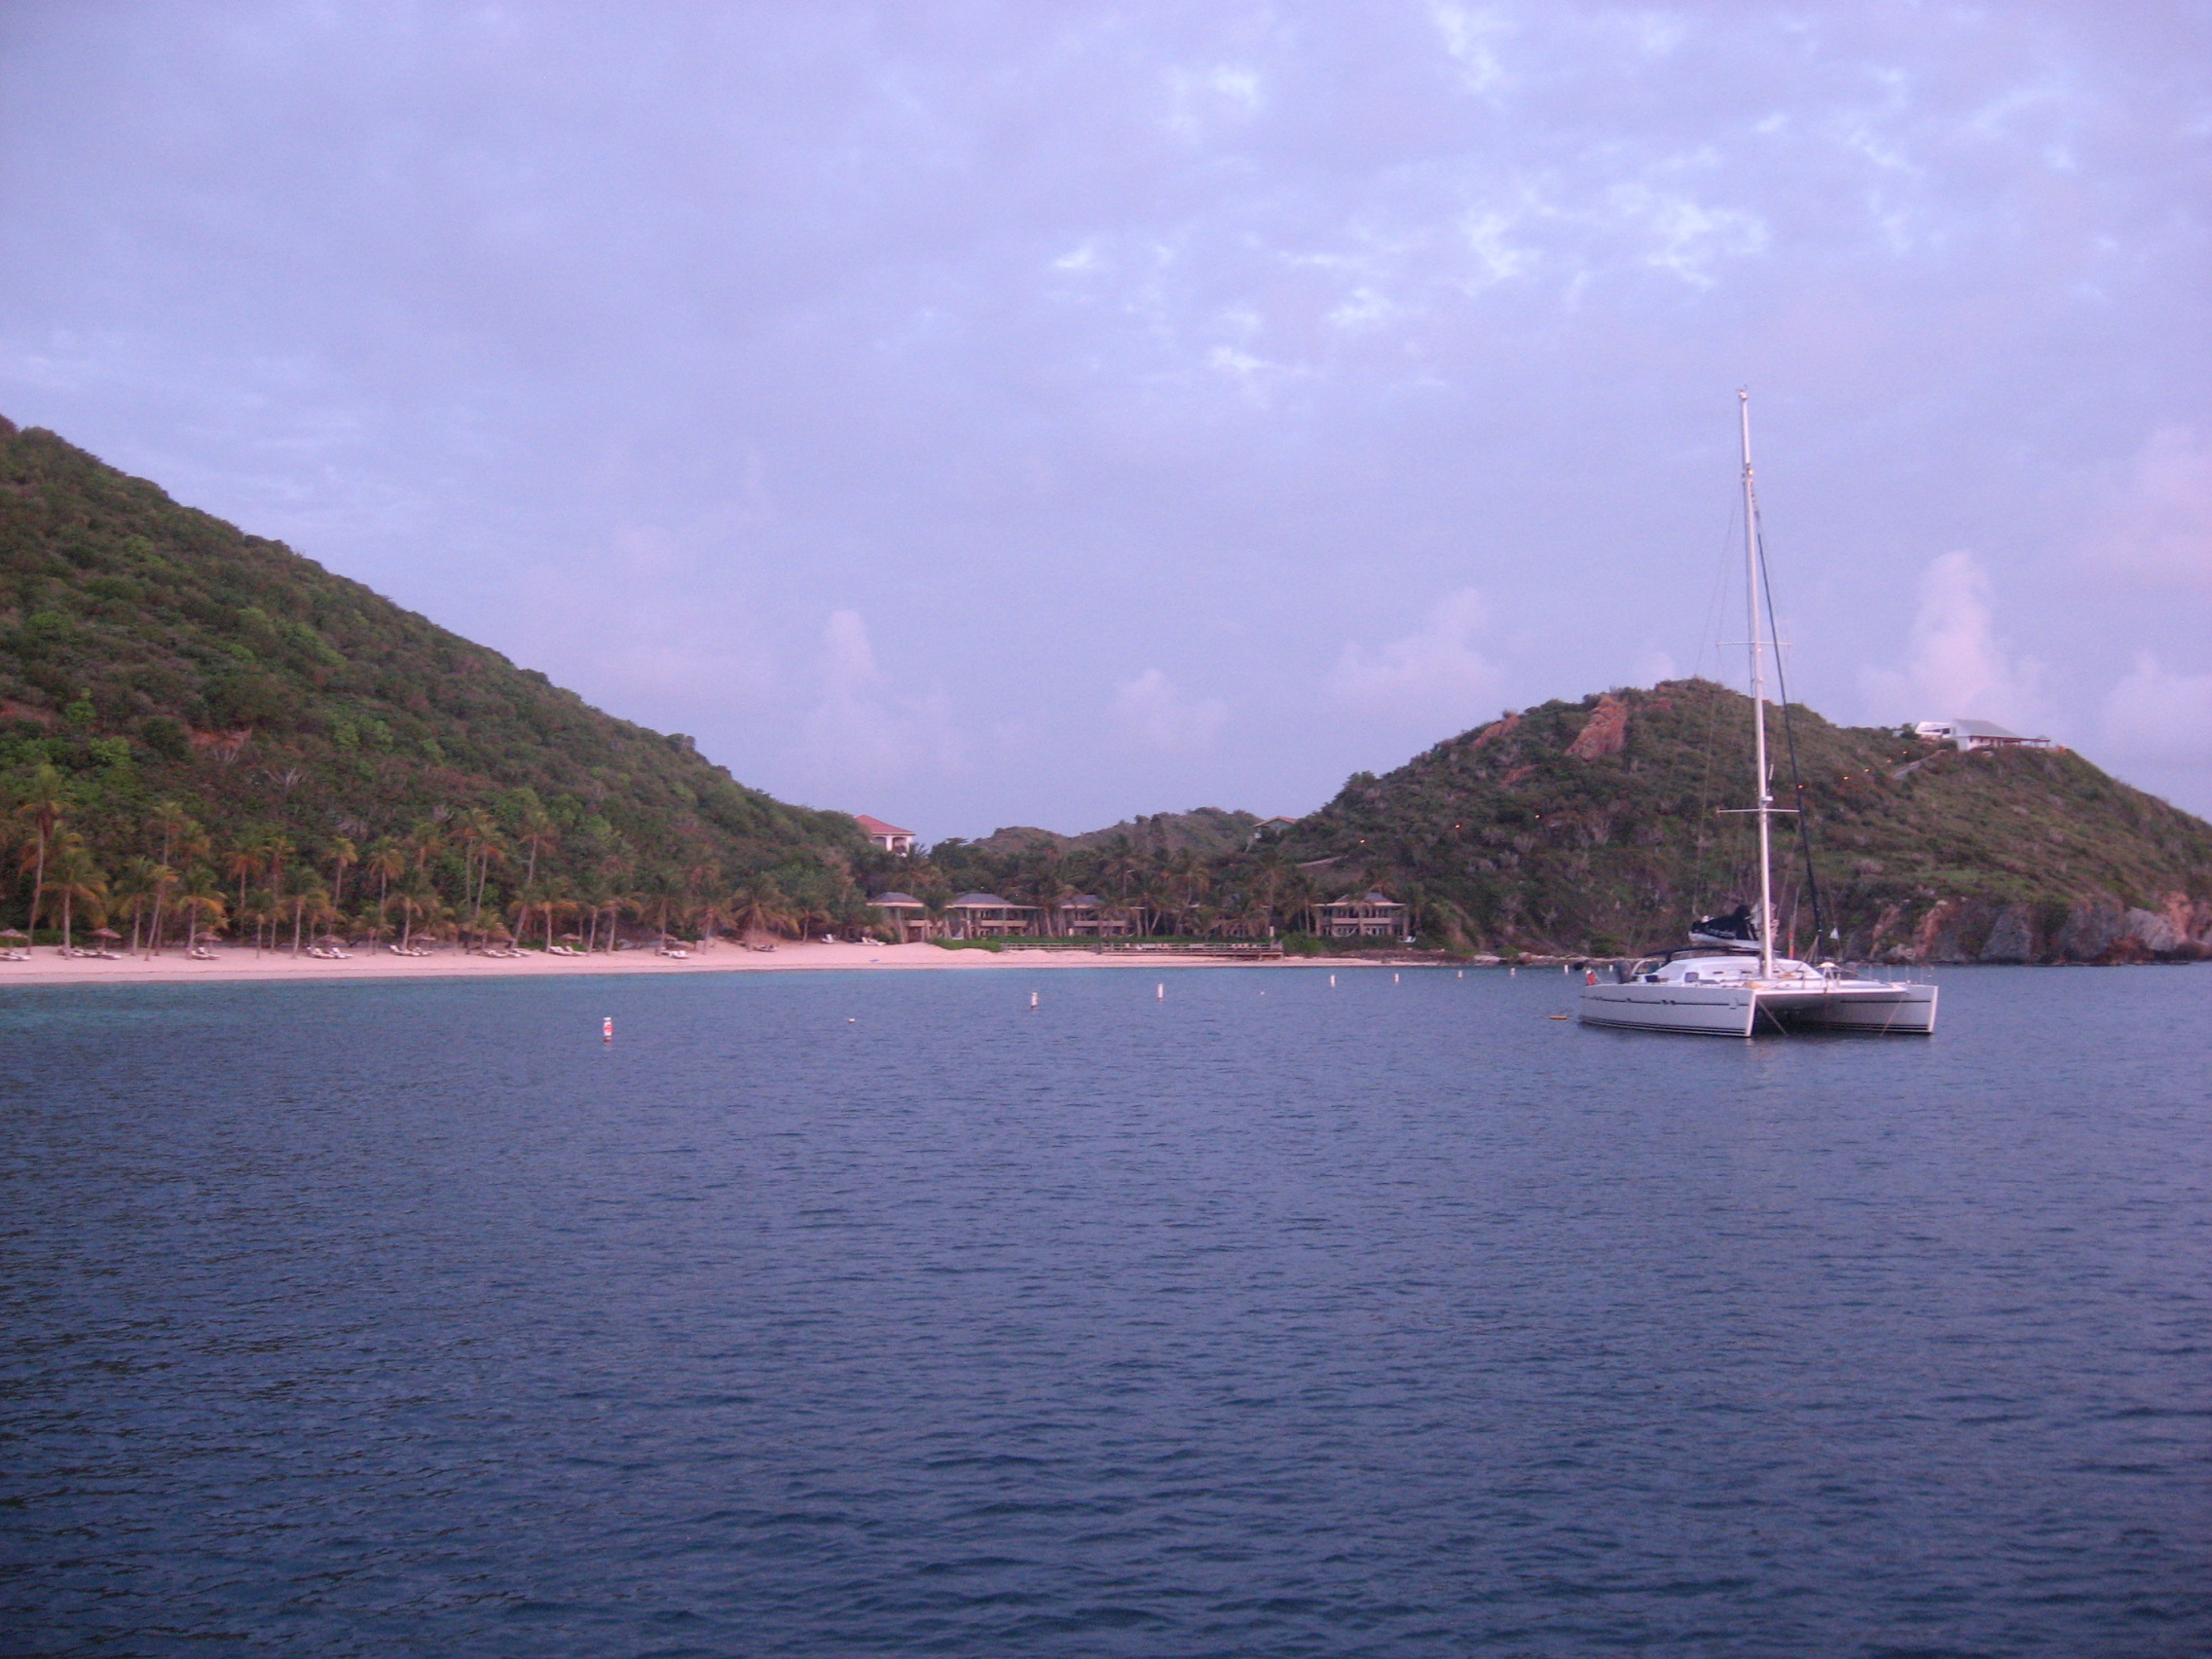 Deadman's Beach on Peter Island, BVI